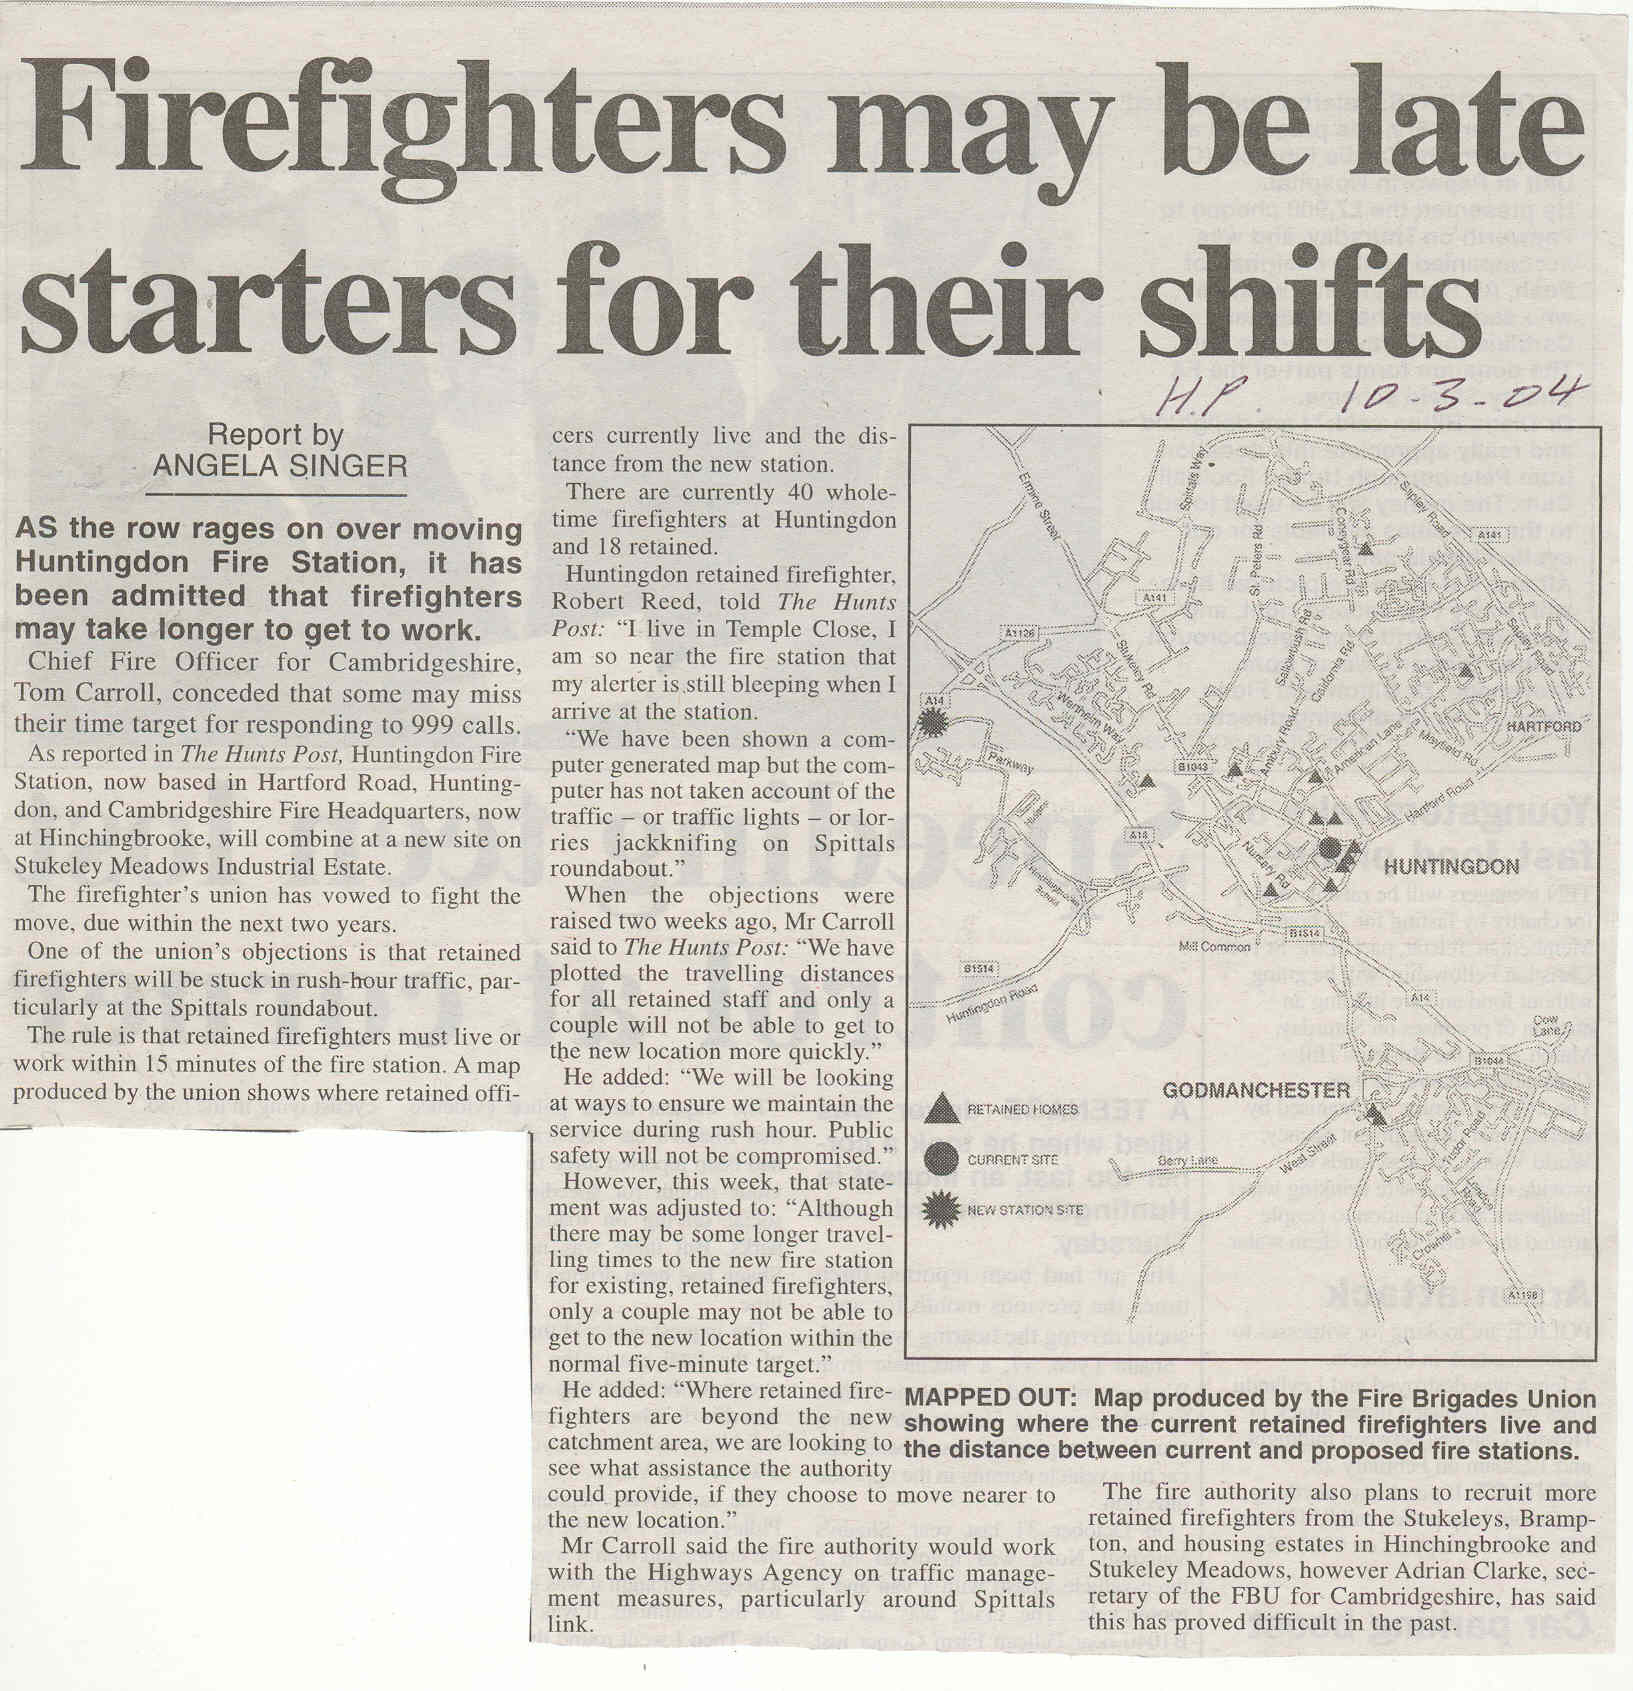 Firefighters Problems Source Hunts Post Newsworthy Huntingdon